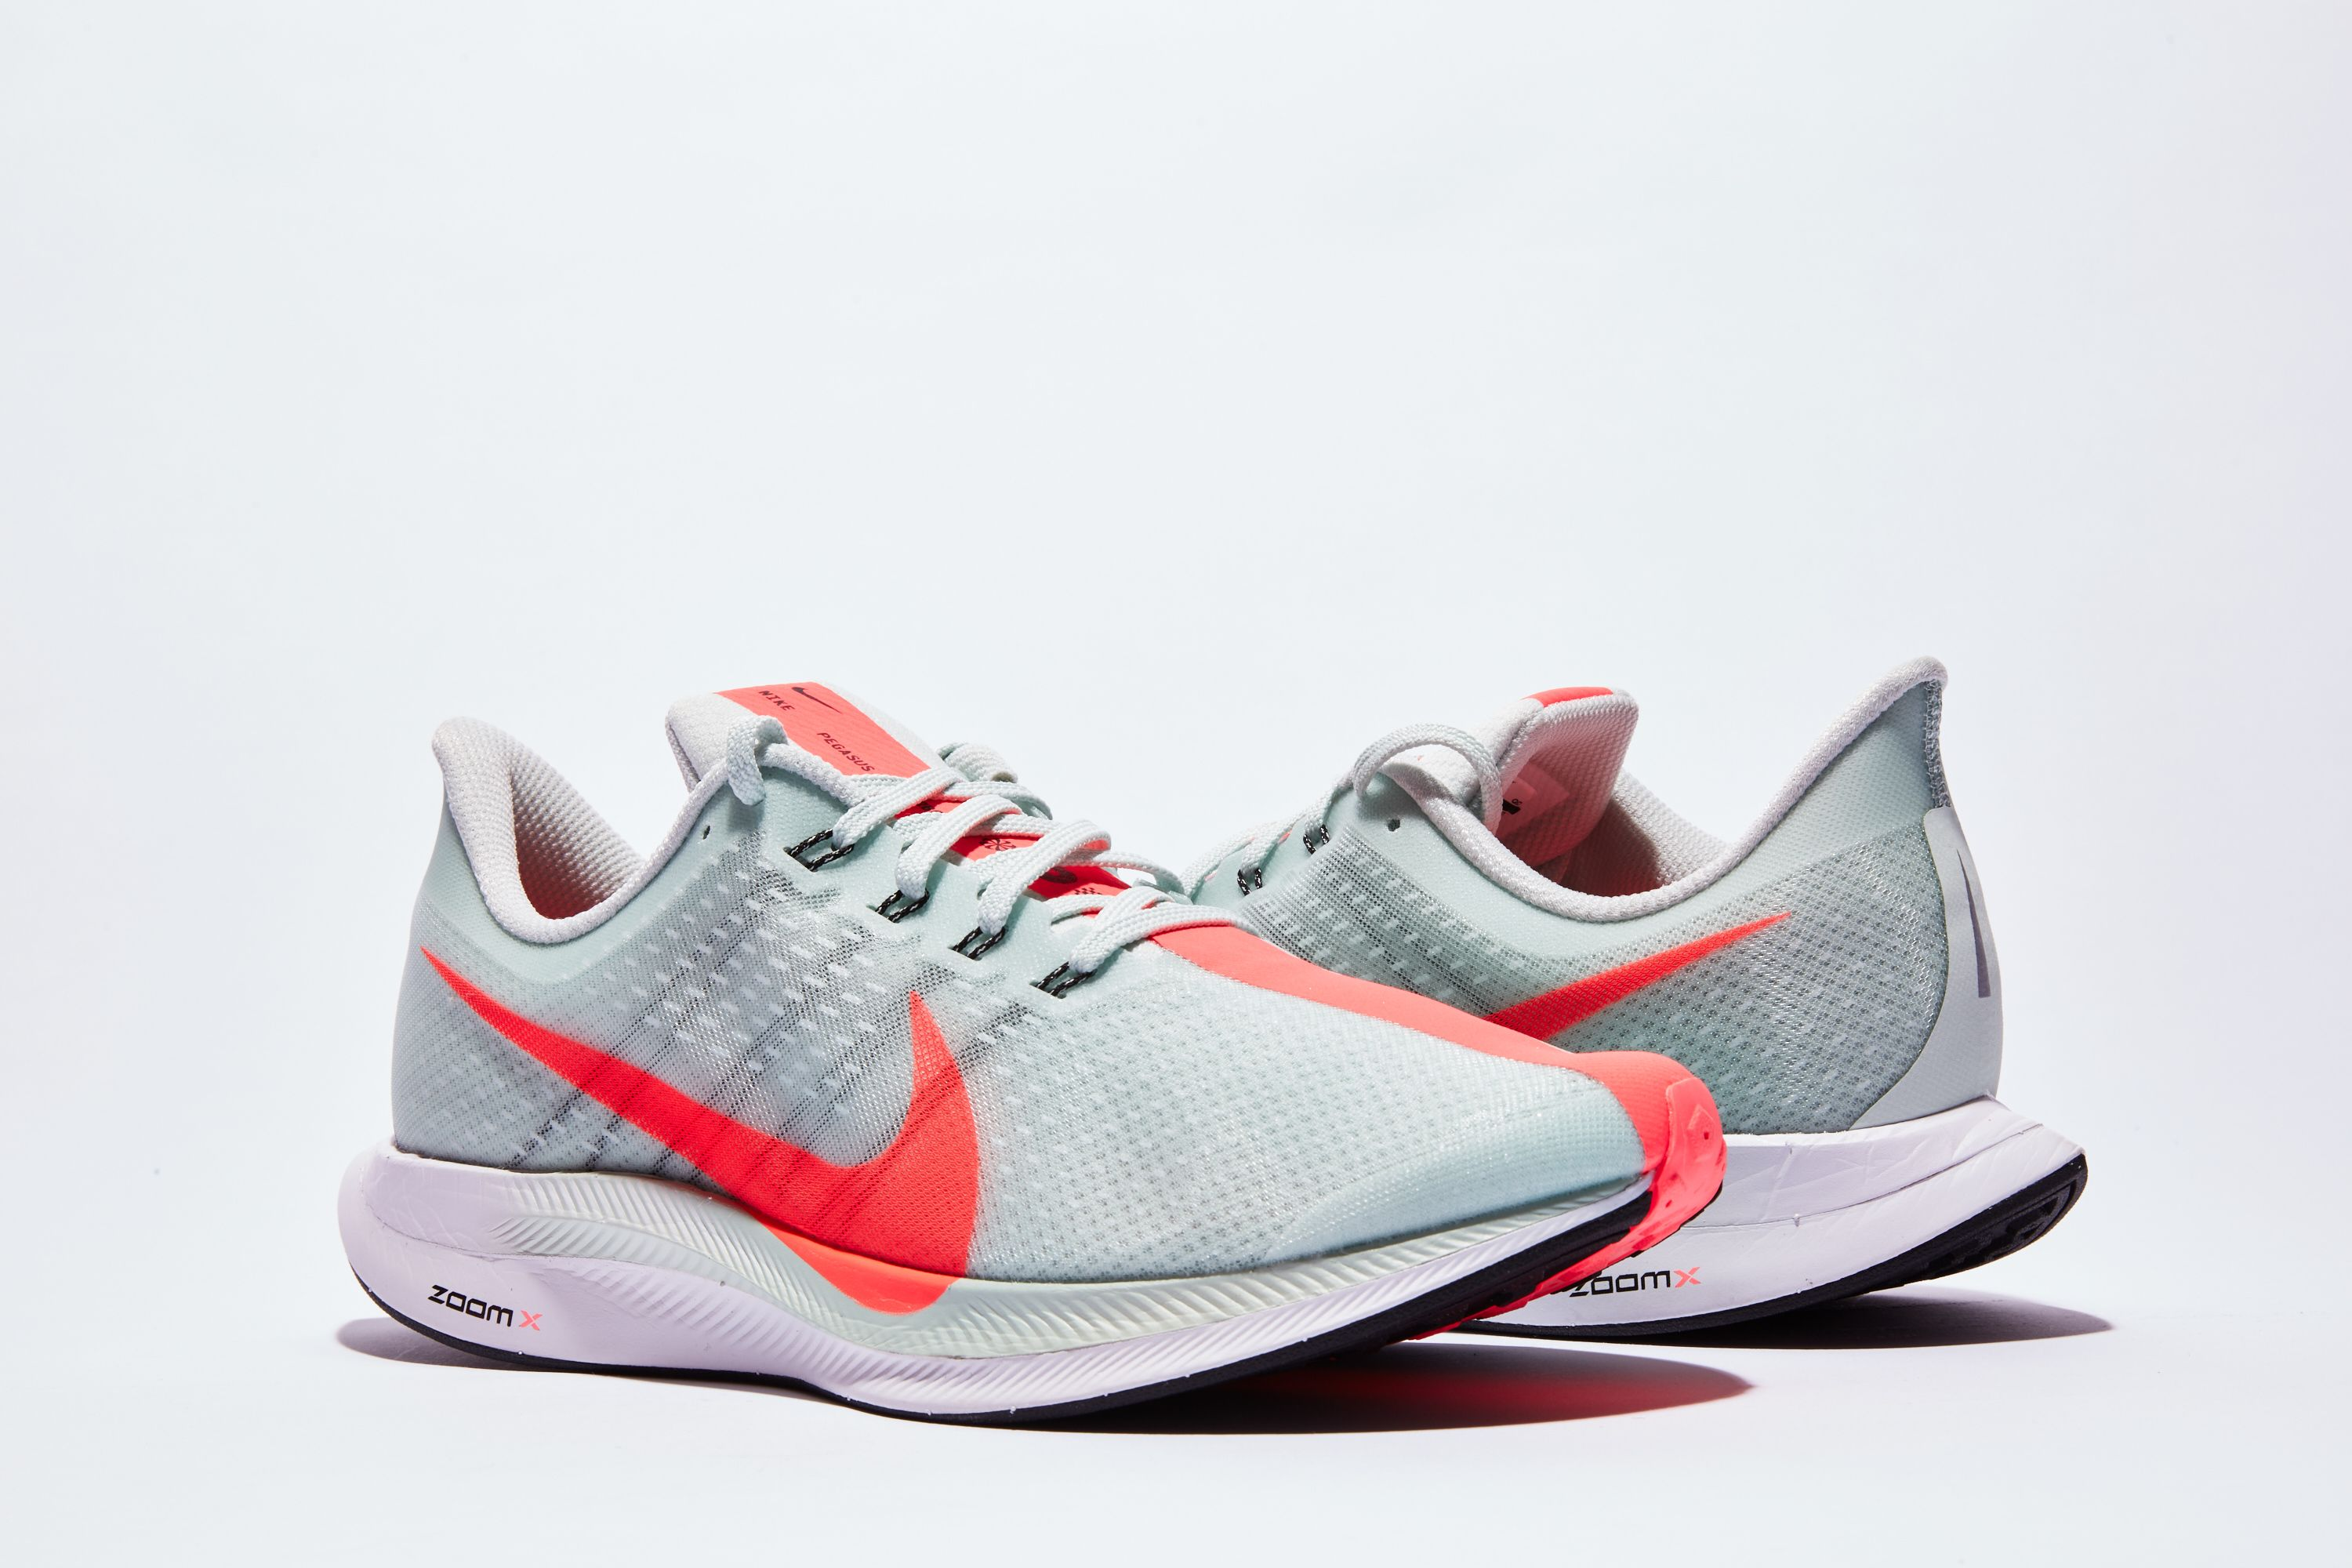 41f7ad7ea08 Nike Zoom Pegasus 35 Turbo - Running Shoes for Speed